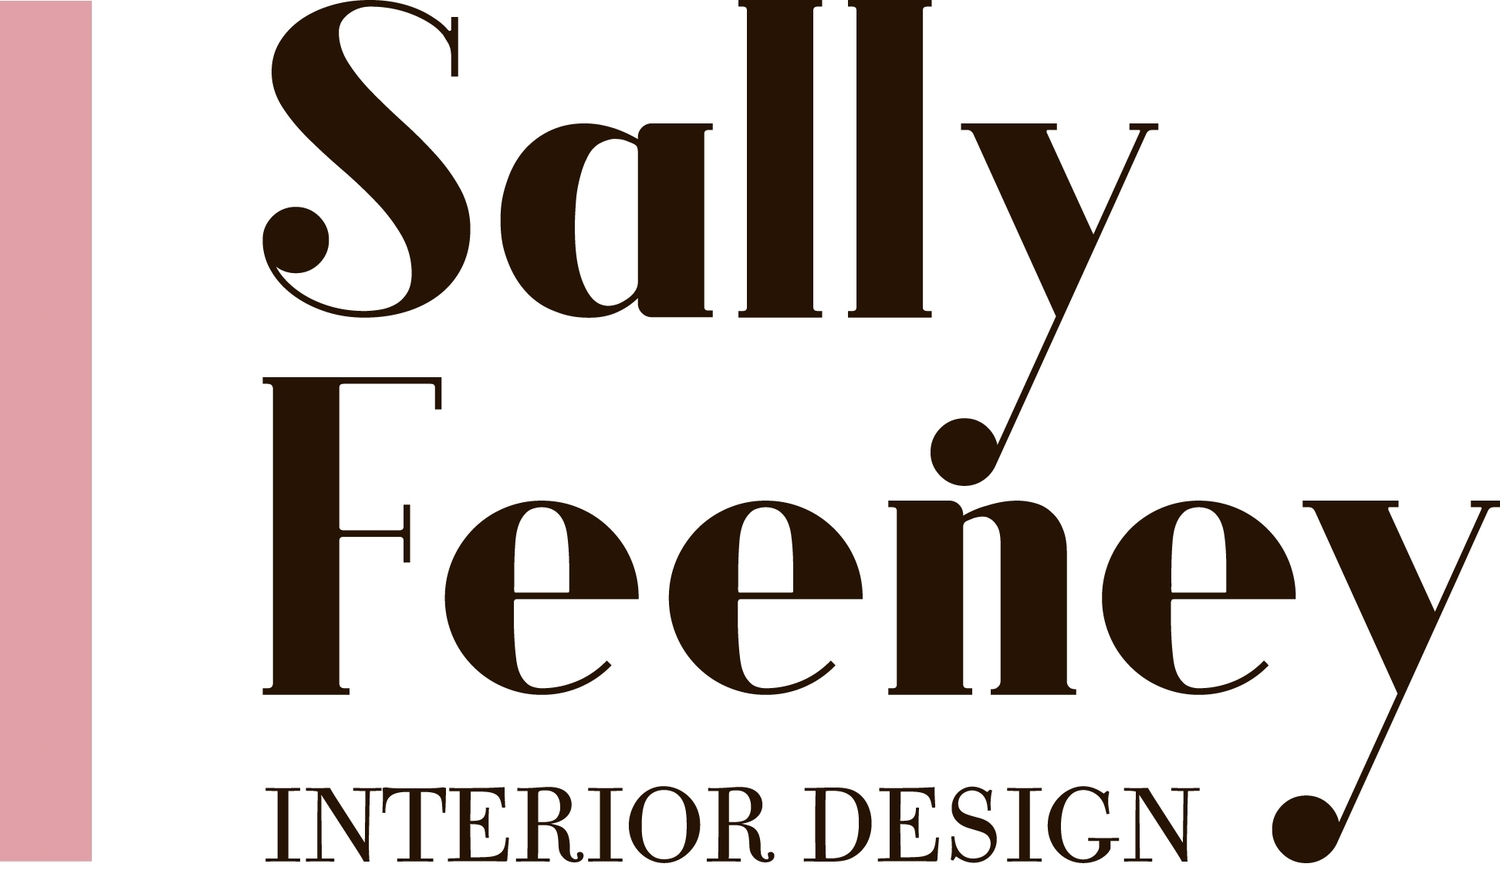 Sally Feeney Interior Design